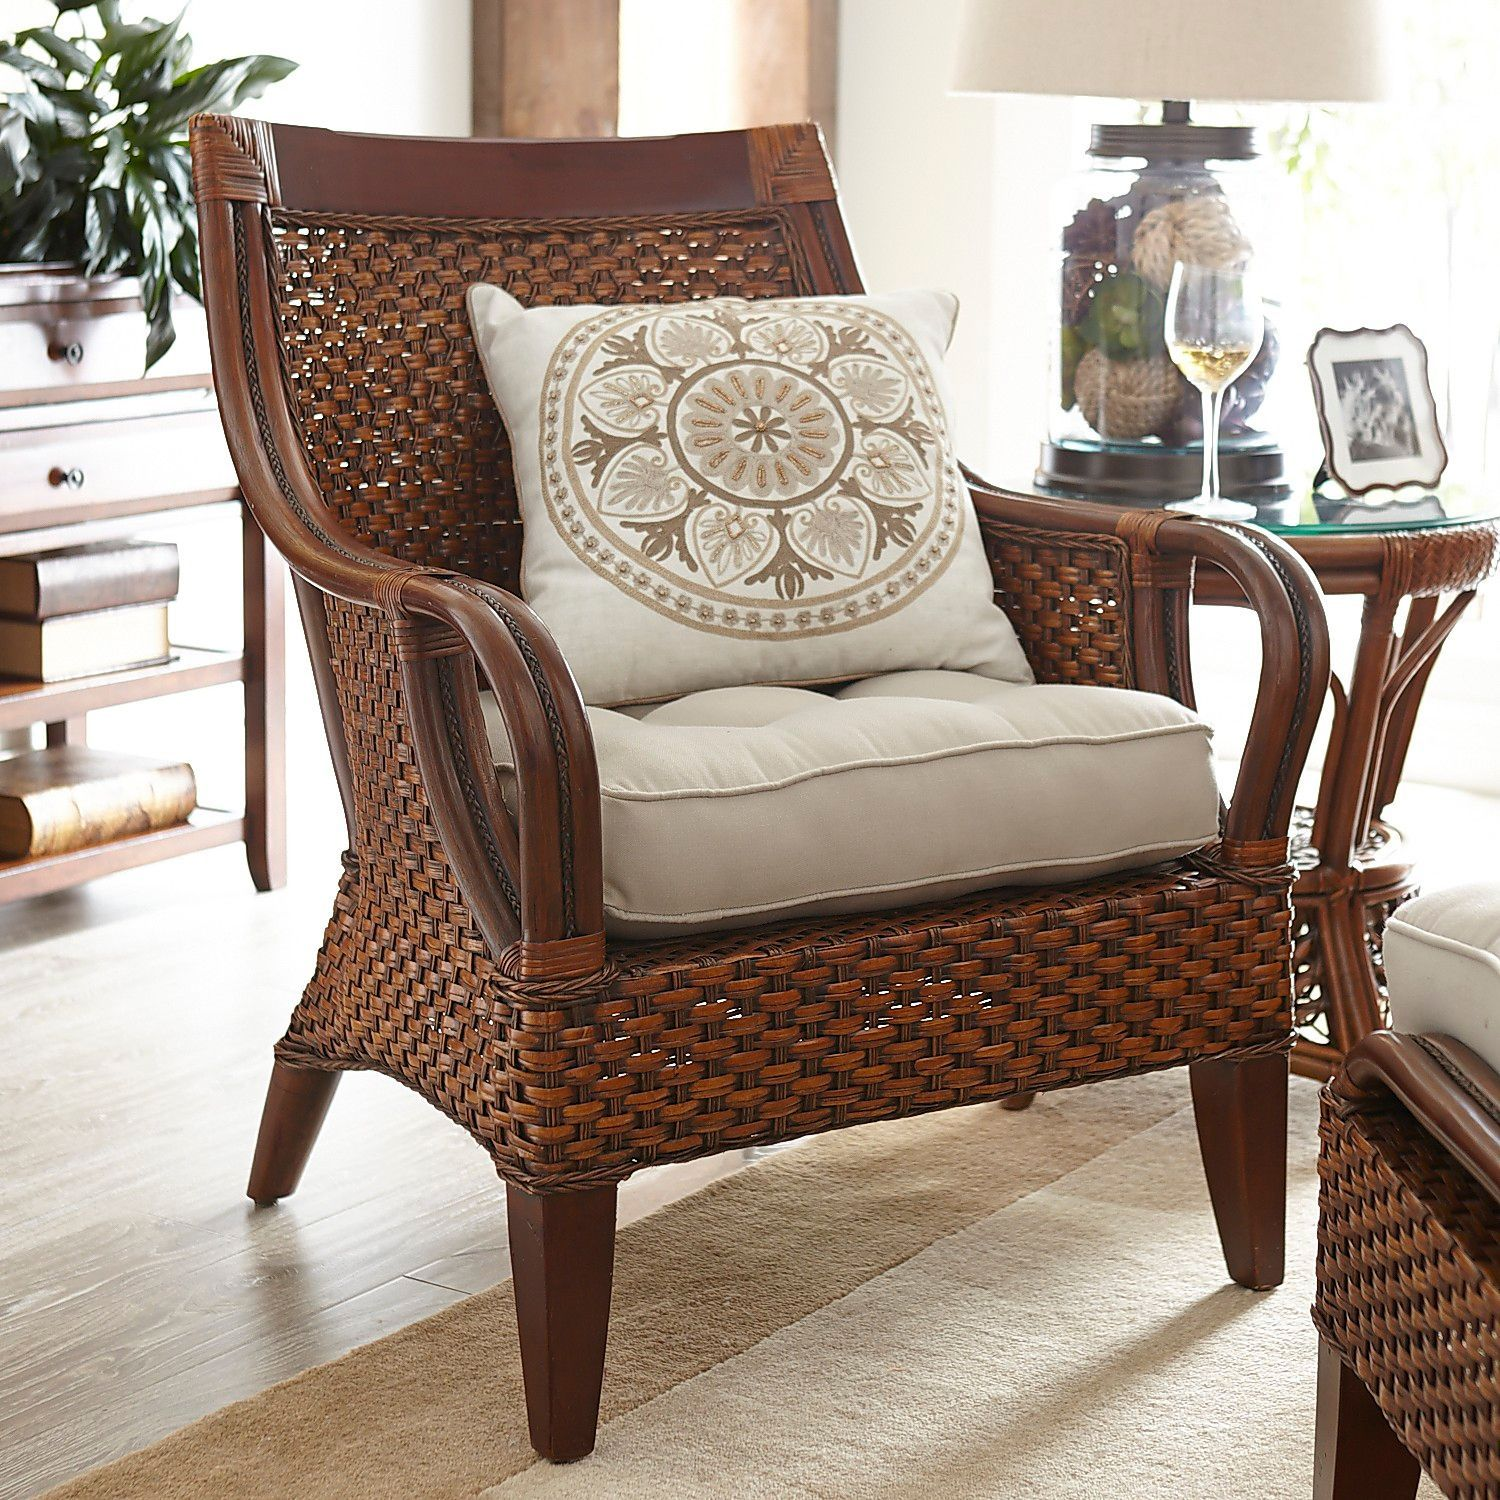 White French Style Bedroom Chair